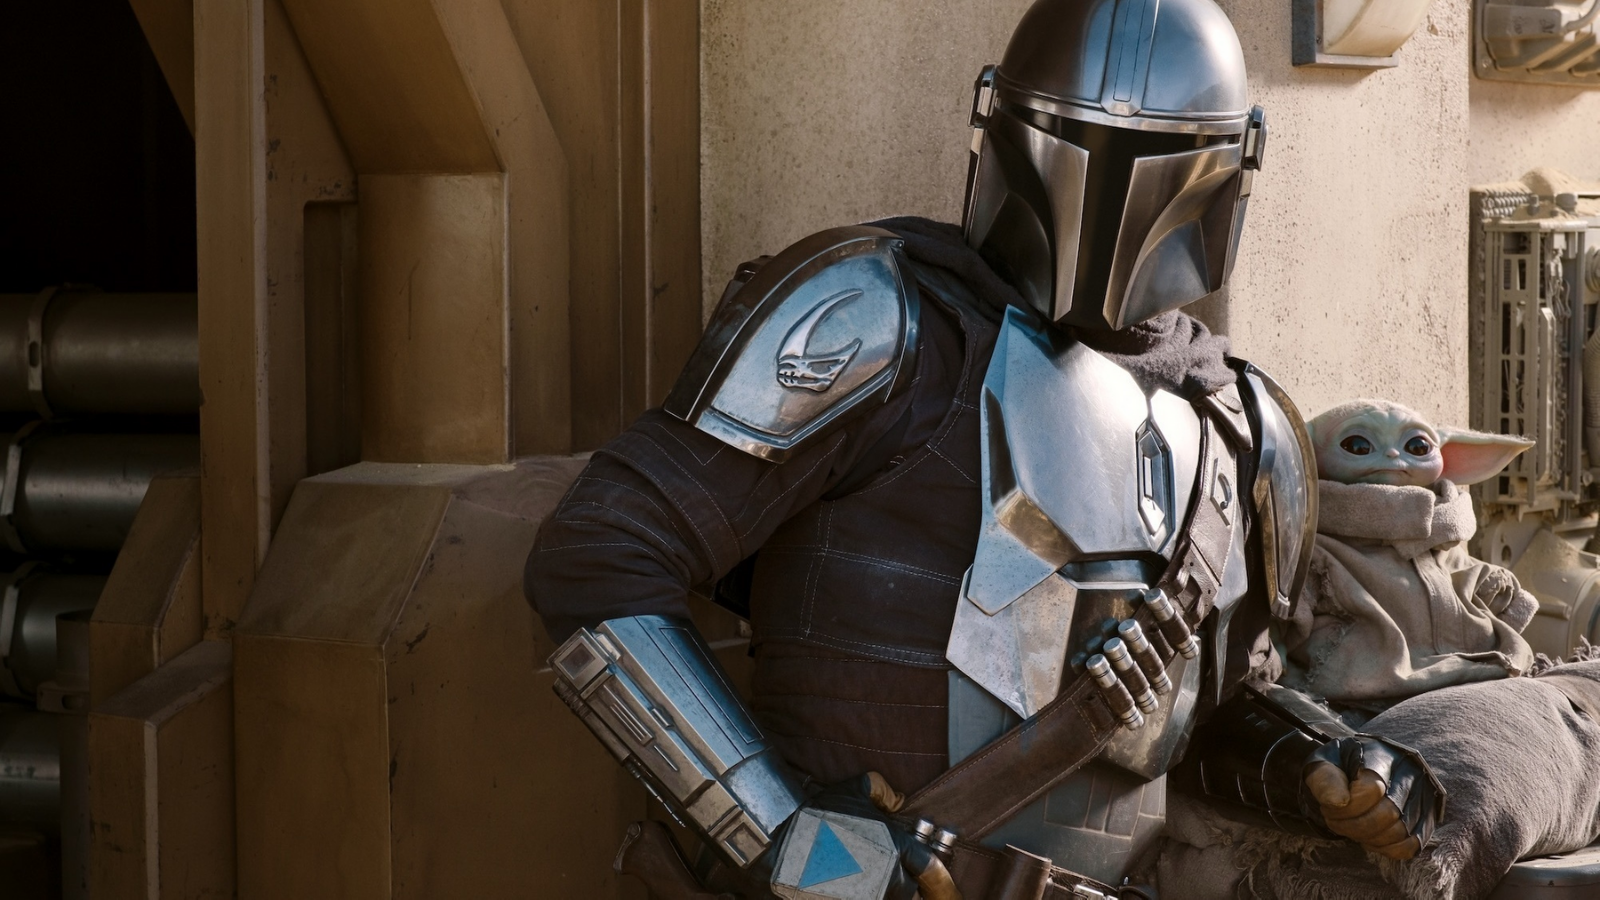 'Baby Yoda' toys: Products featuring the Child from 'The Mandalorian' are a sales force